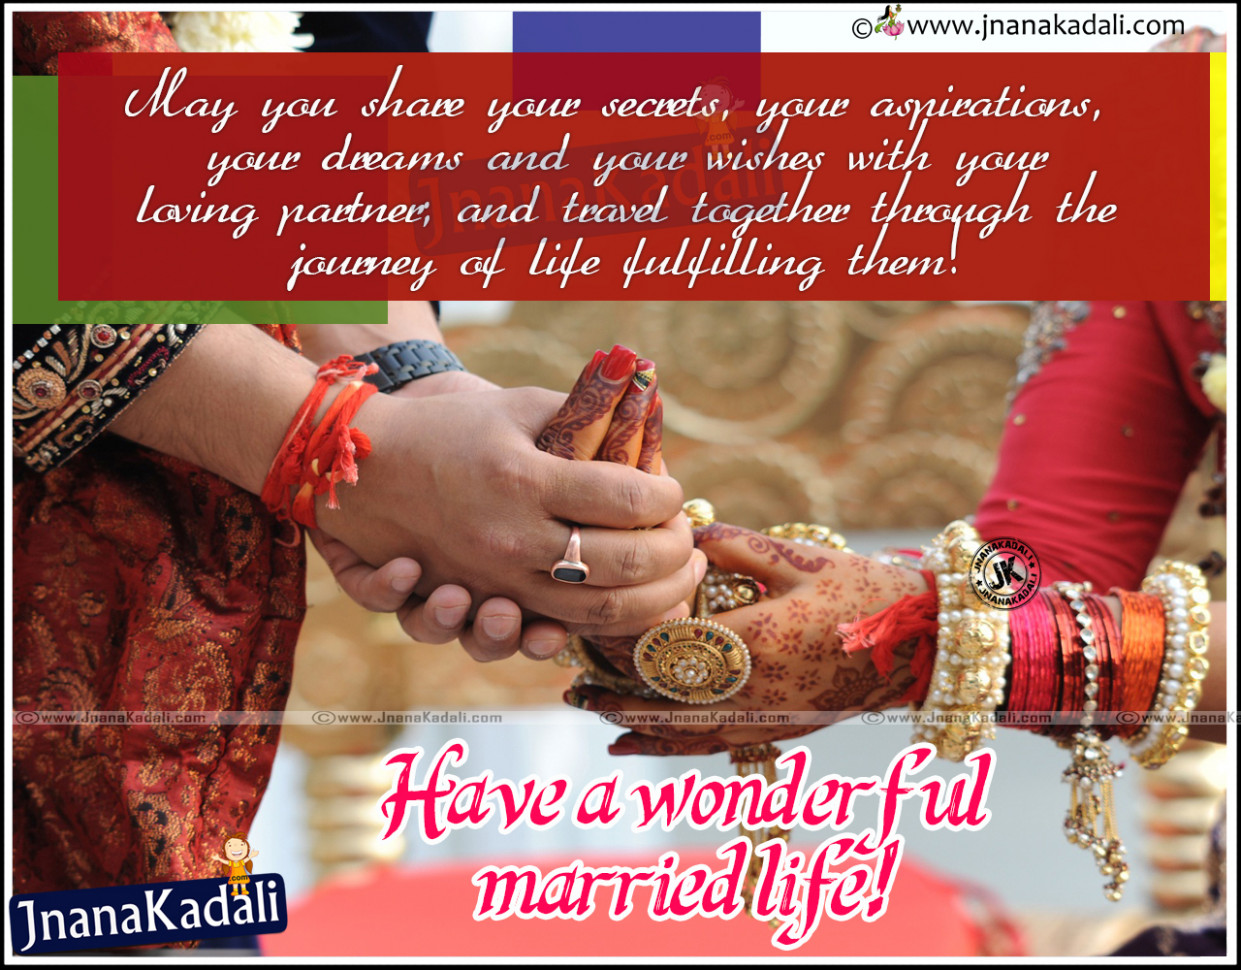 Best Marriage wishes and Quotes Images | JNANA KADALI.COM ...